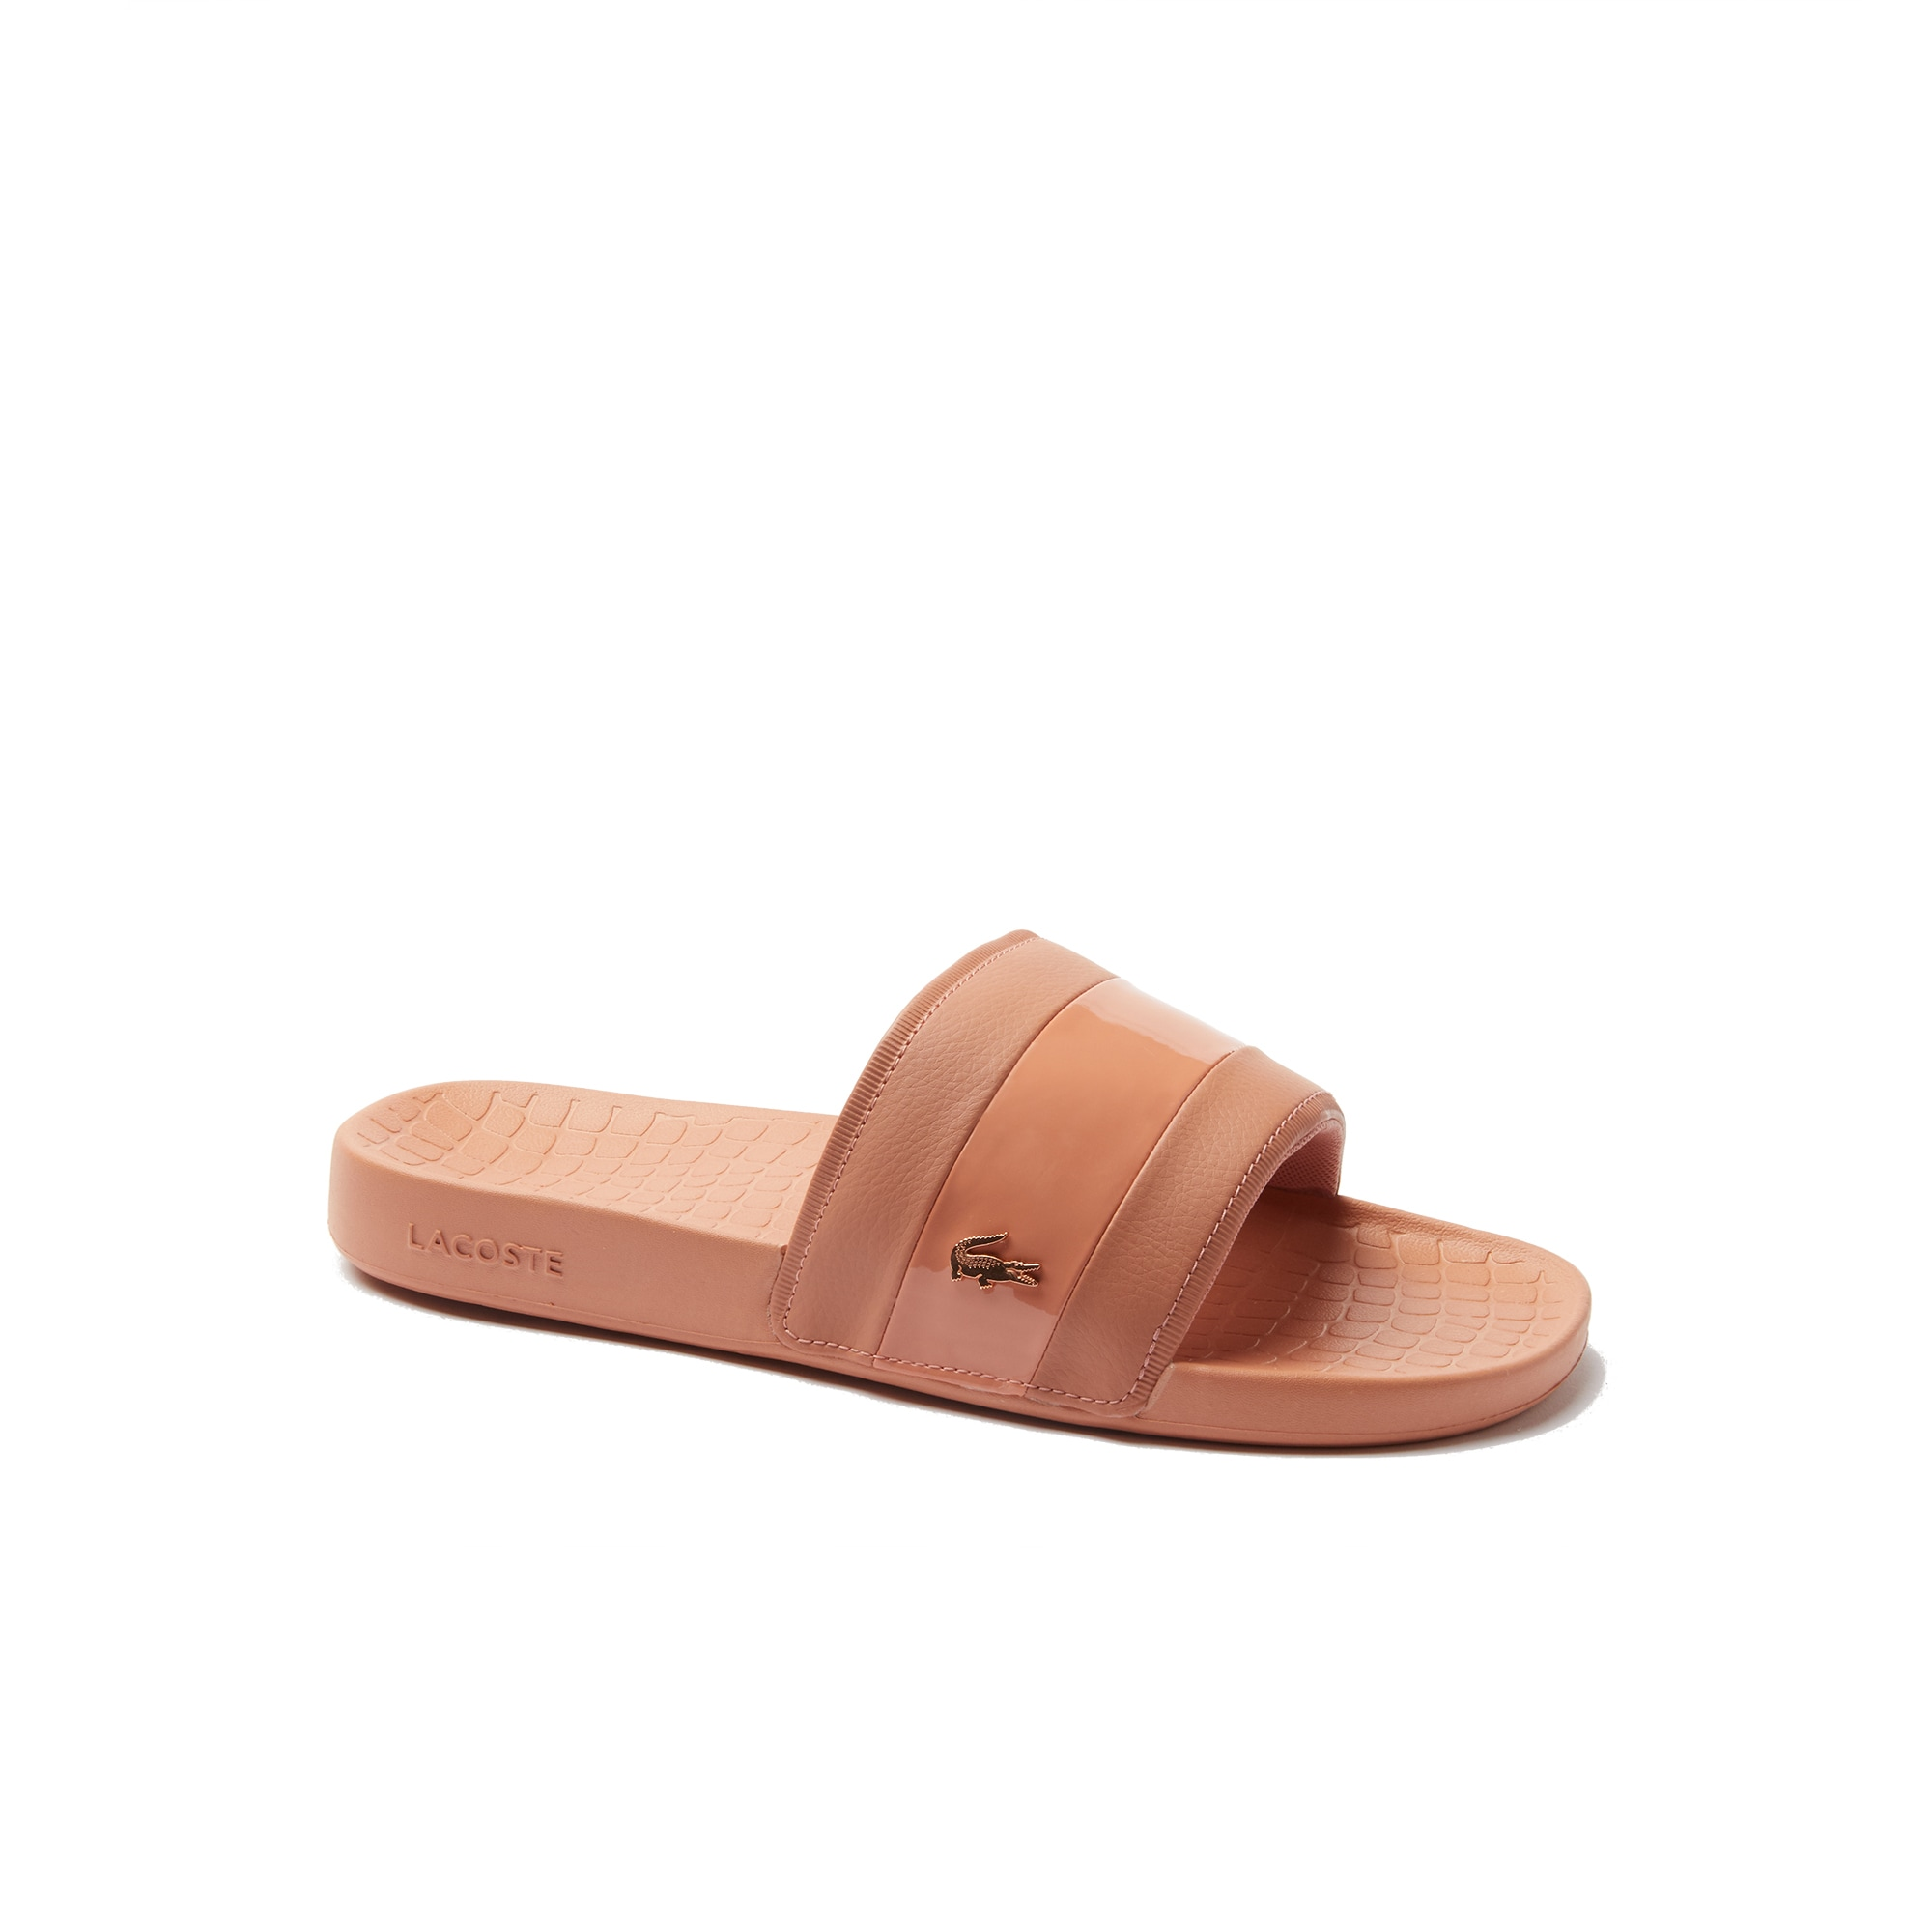 Women's Fraisier Leather Slides